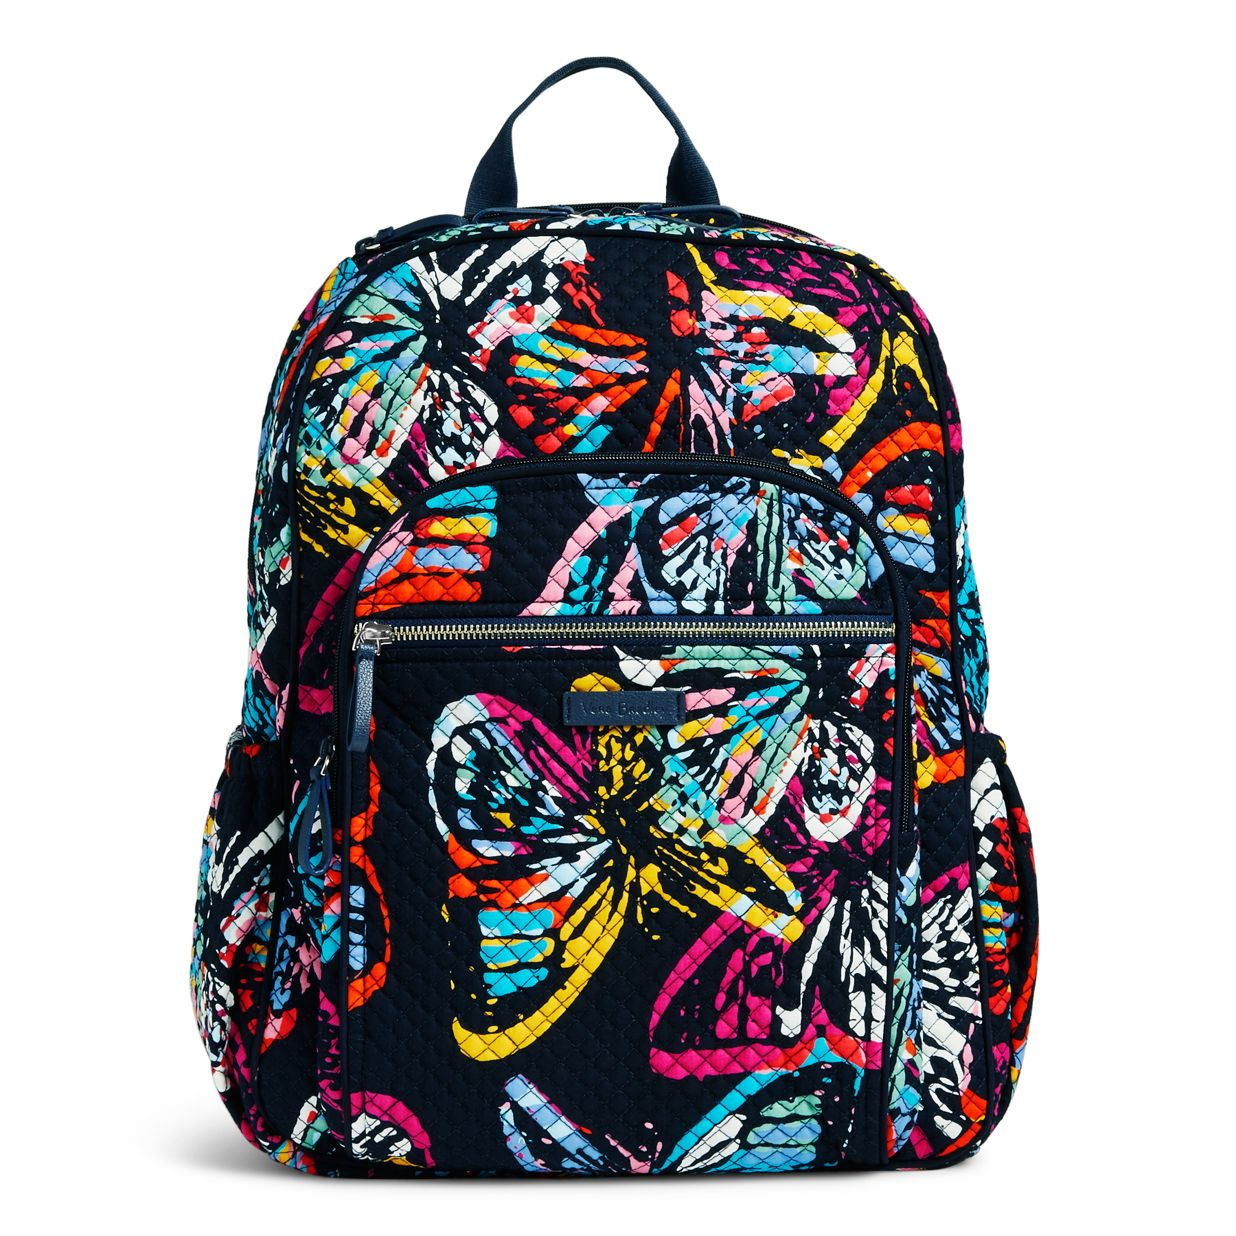 Image of Iconic Campus Backpack in Butterfly Flutter ... 8abe5be5bfd72